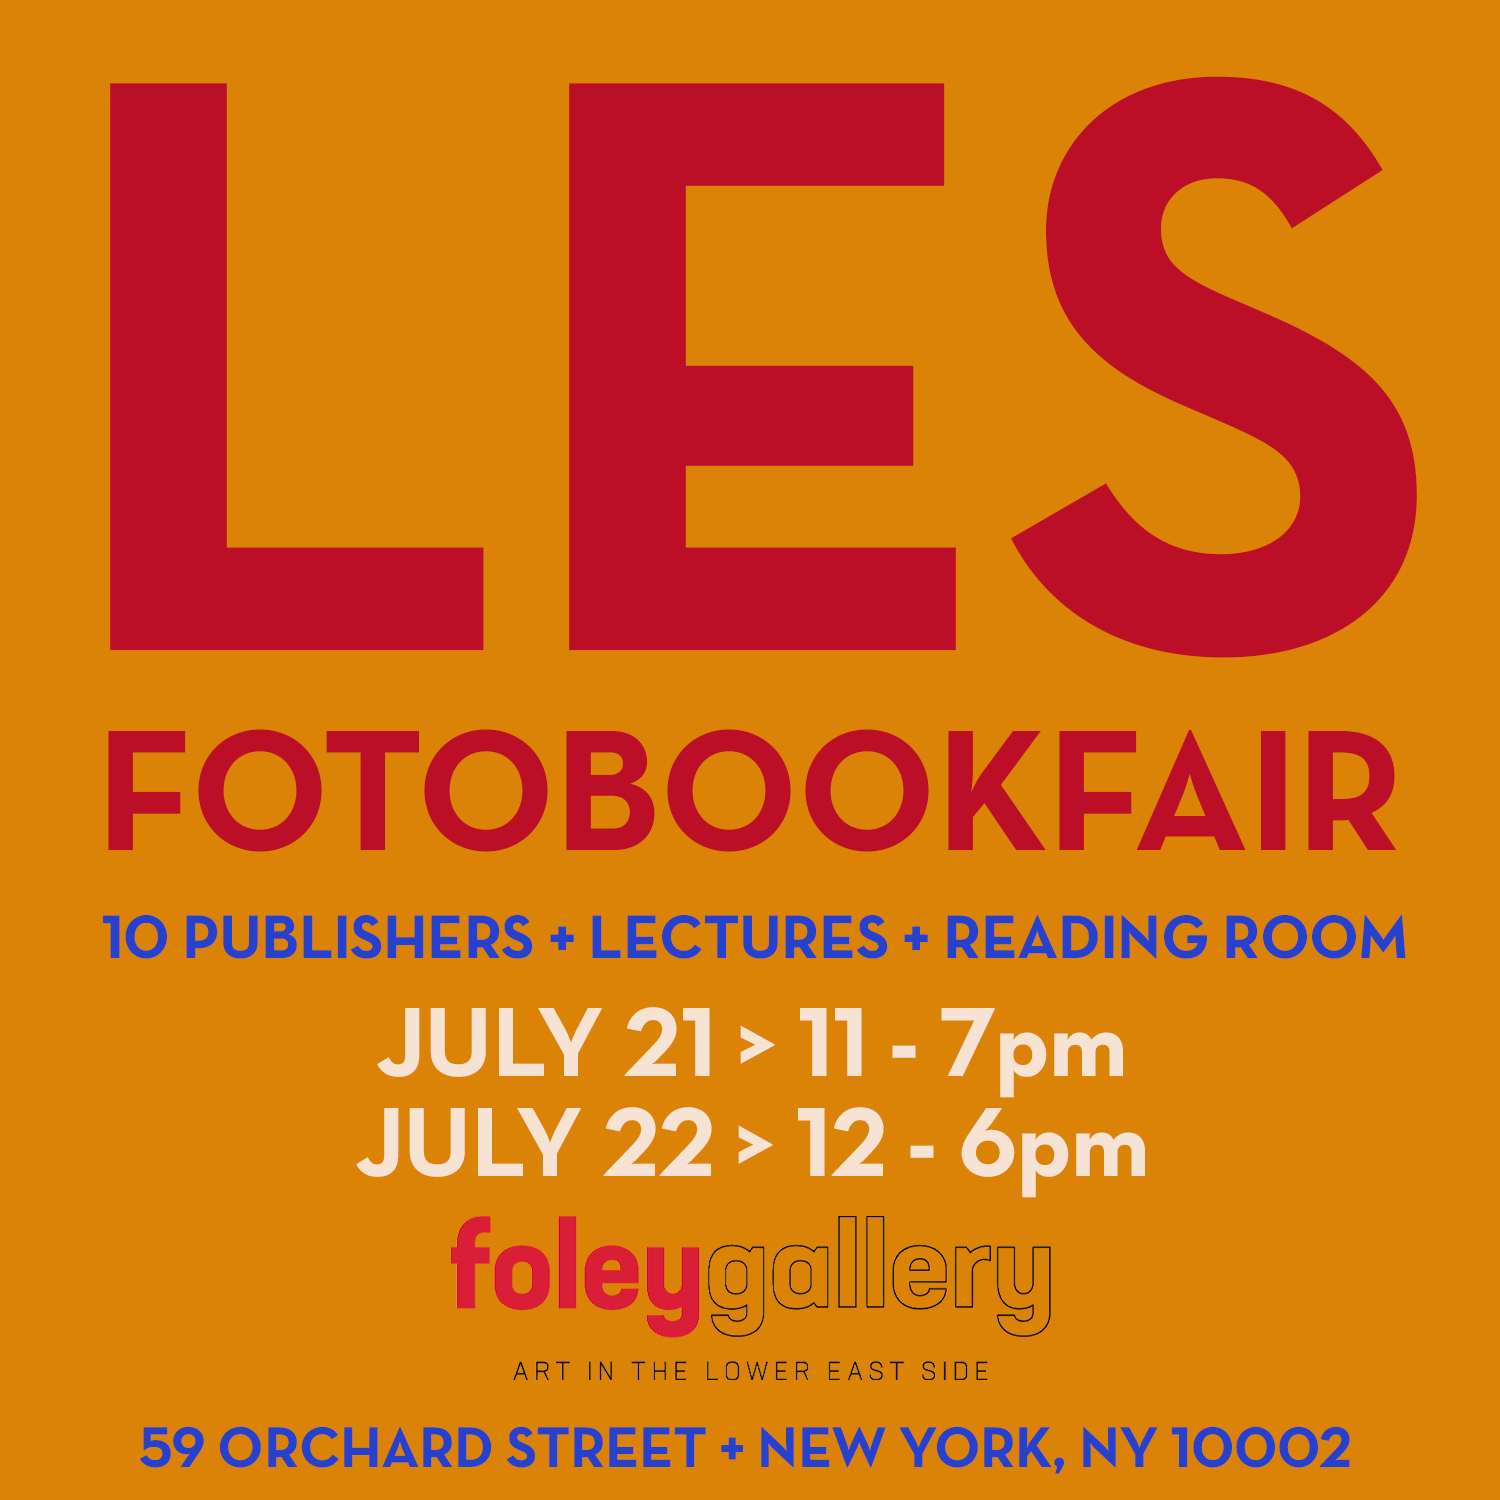 Foley Gallery and +KGP have put together a book fair in New York, you should come out!